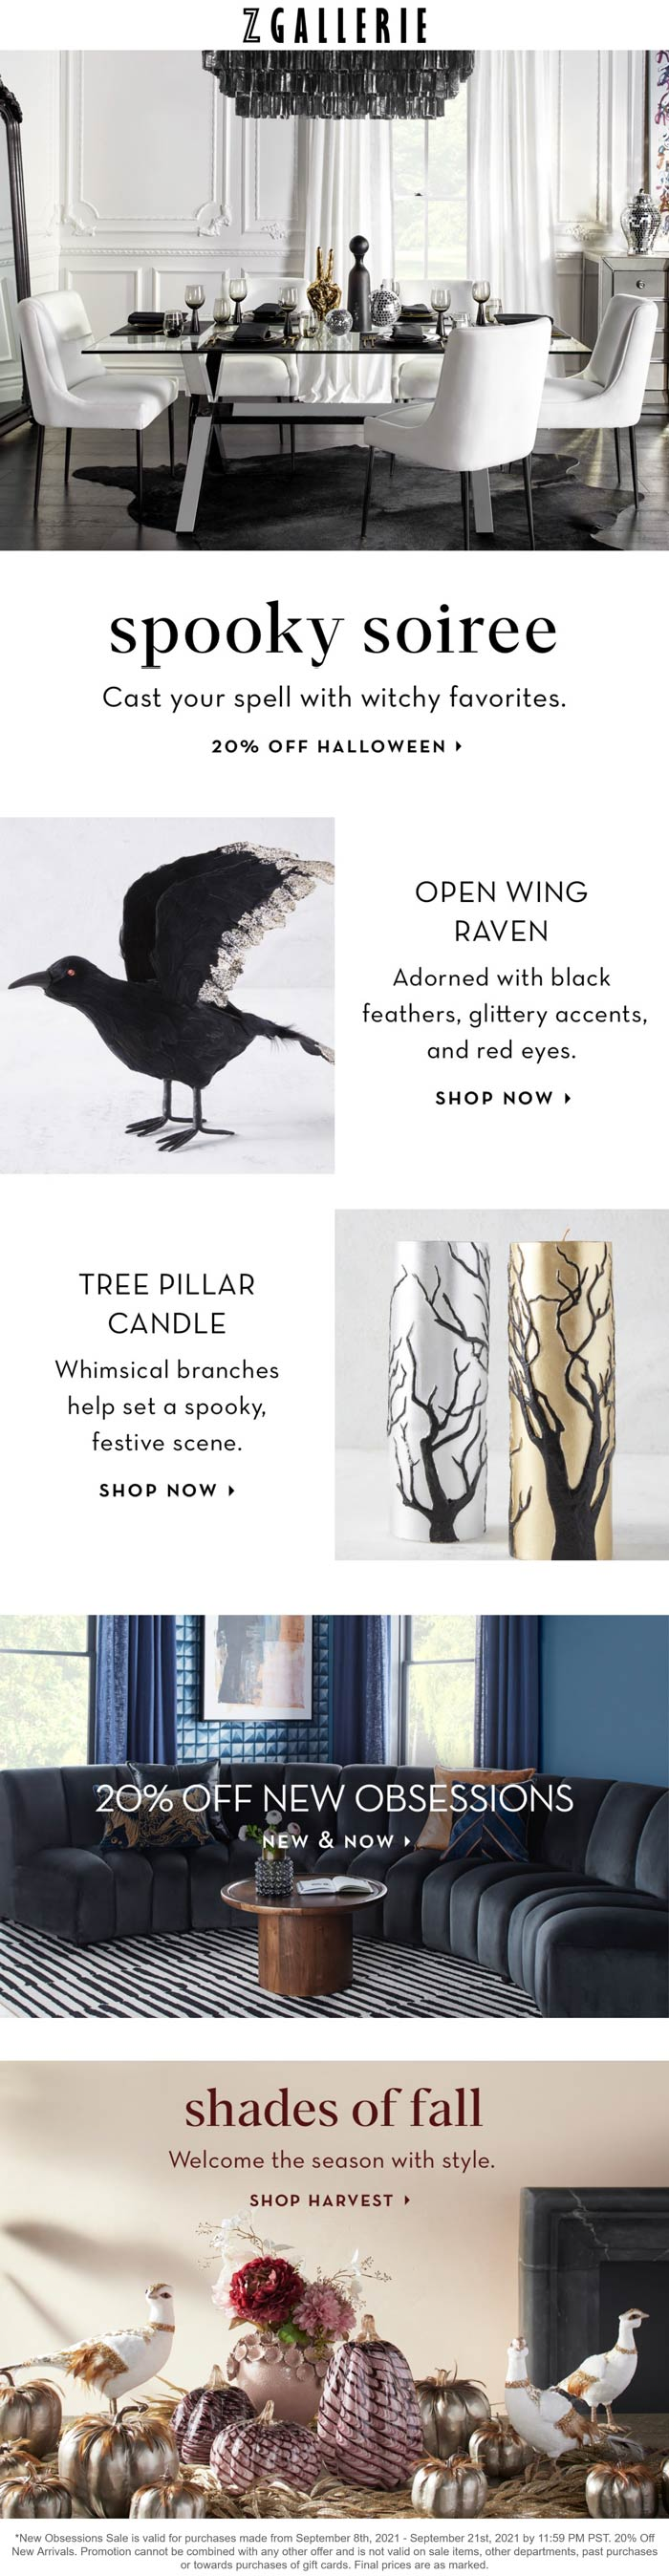 Z Gallerie stores Coupon  20% off new arrivals at Z Gallerie #zgallerie